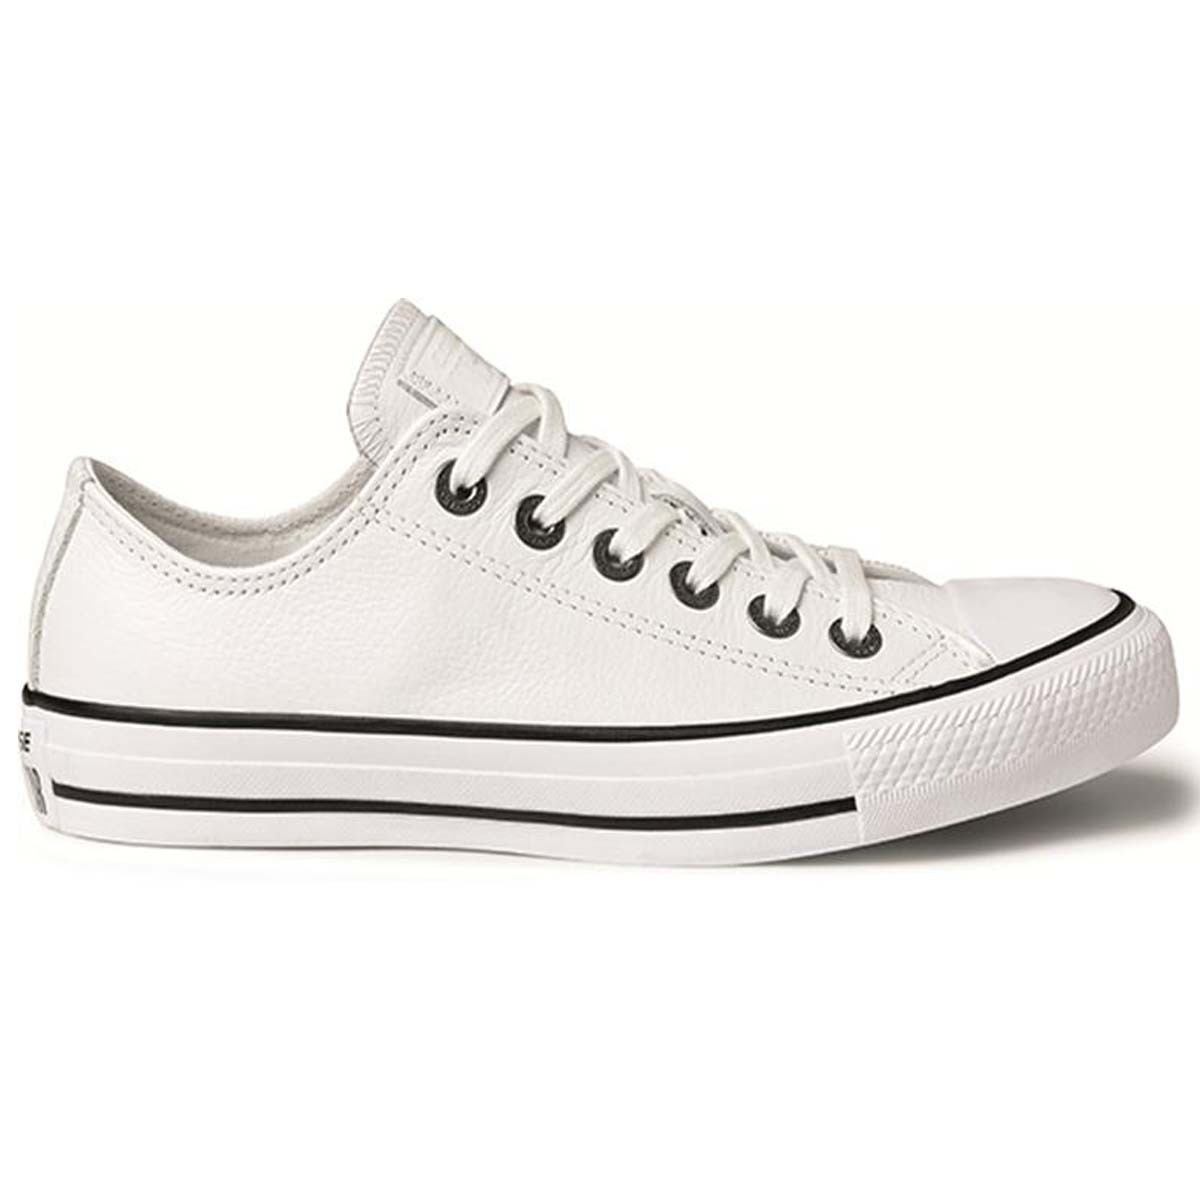 Tênis Converse All Star CT04480001 couro